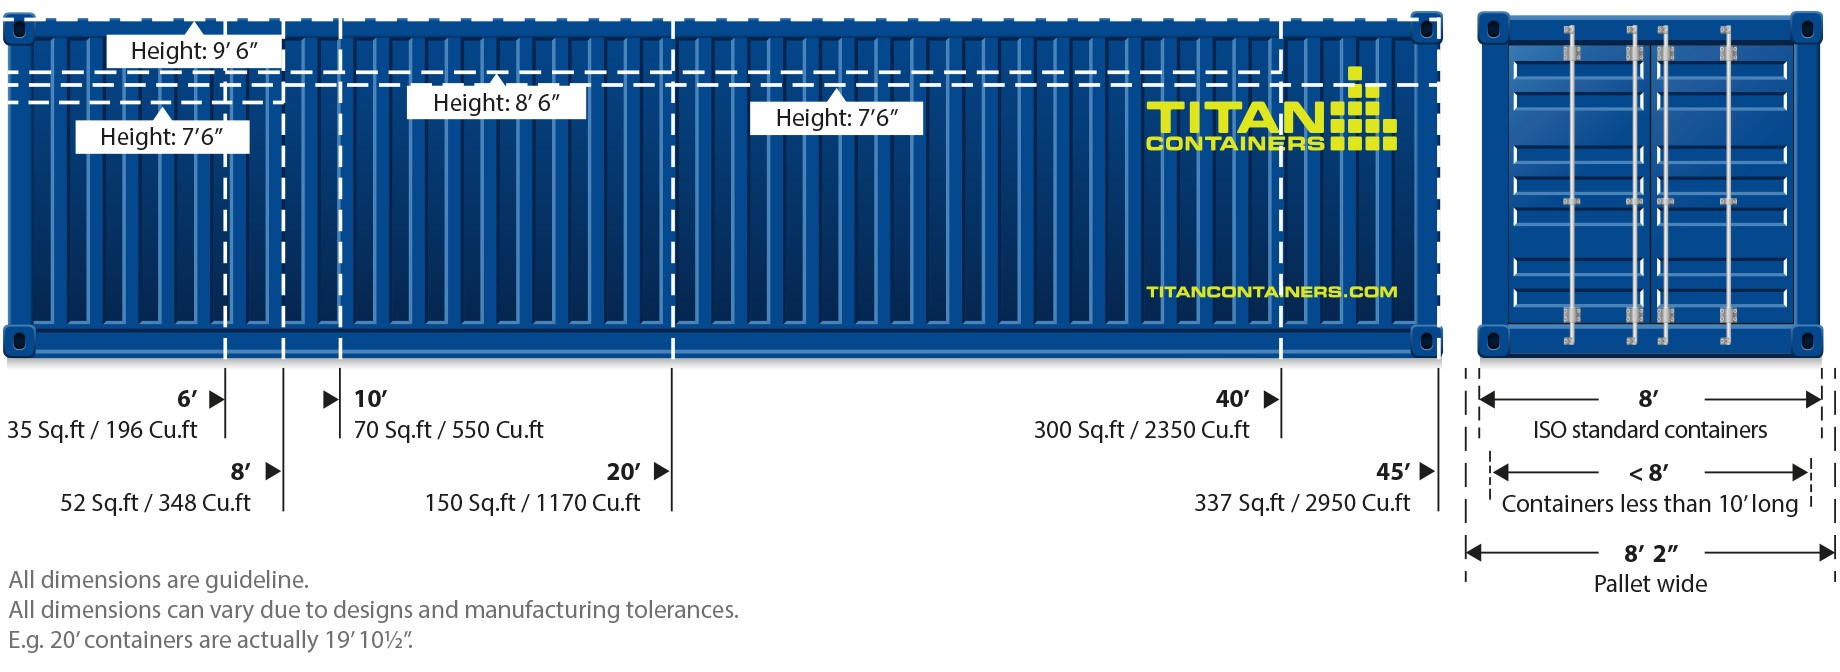 CONTAINER DIMENSIONS GUIDE TITAN CONTAINERS 6 8 10 20 40 FOOT